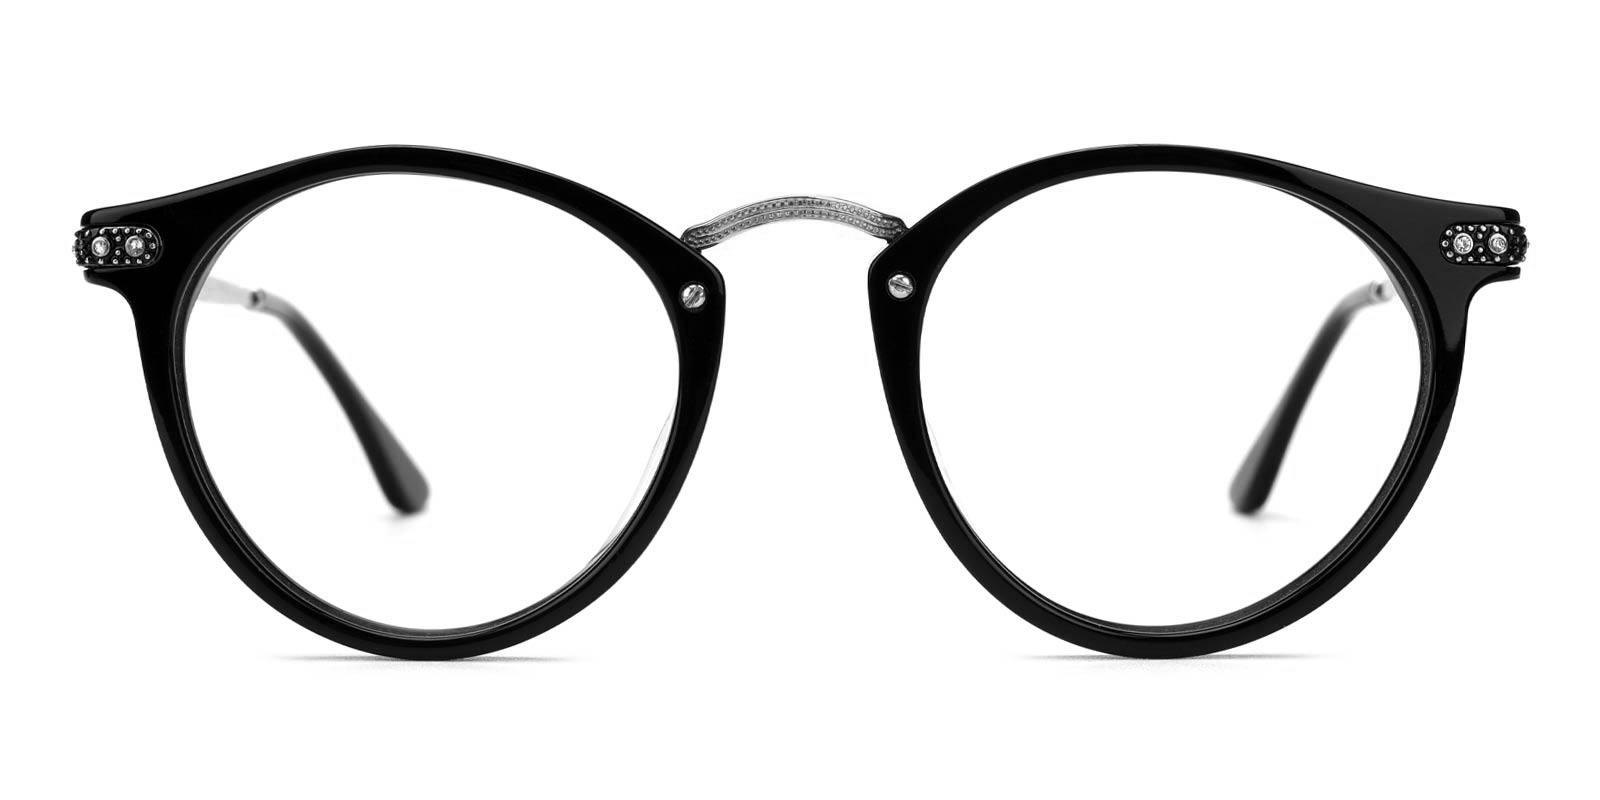 Donna-Silver-Round-Acetate-Eyeglasses-additional2